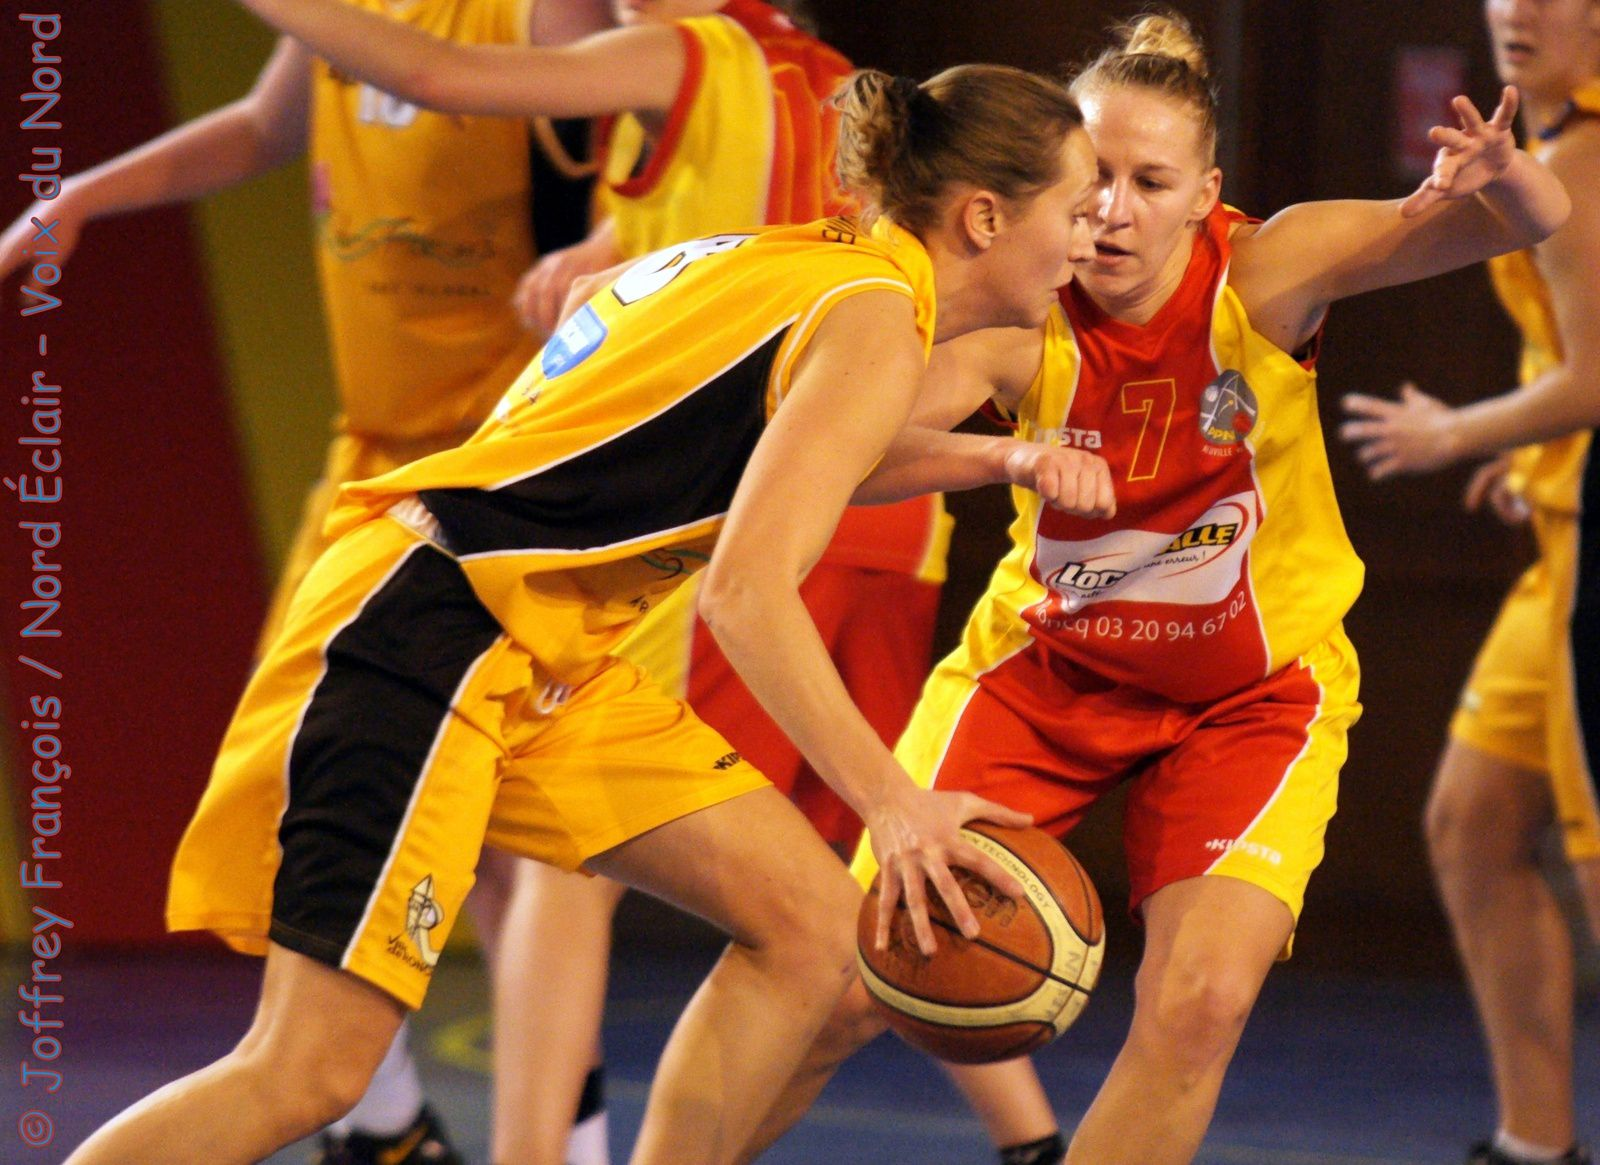 15.12.13 Basket N3f Neuville-Ronchin